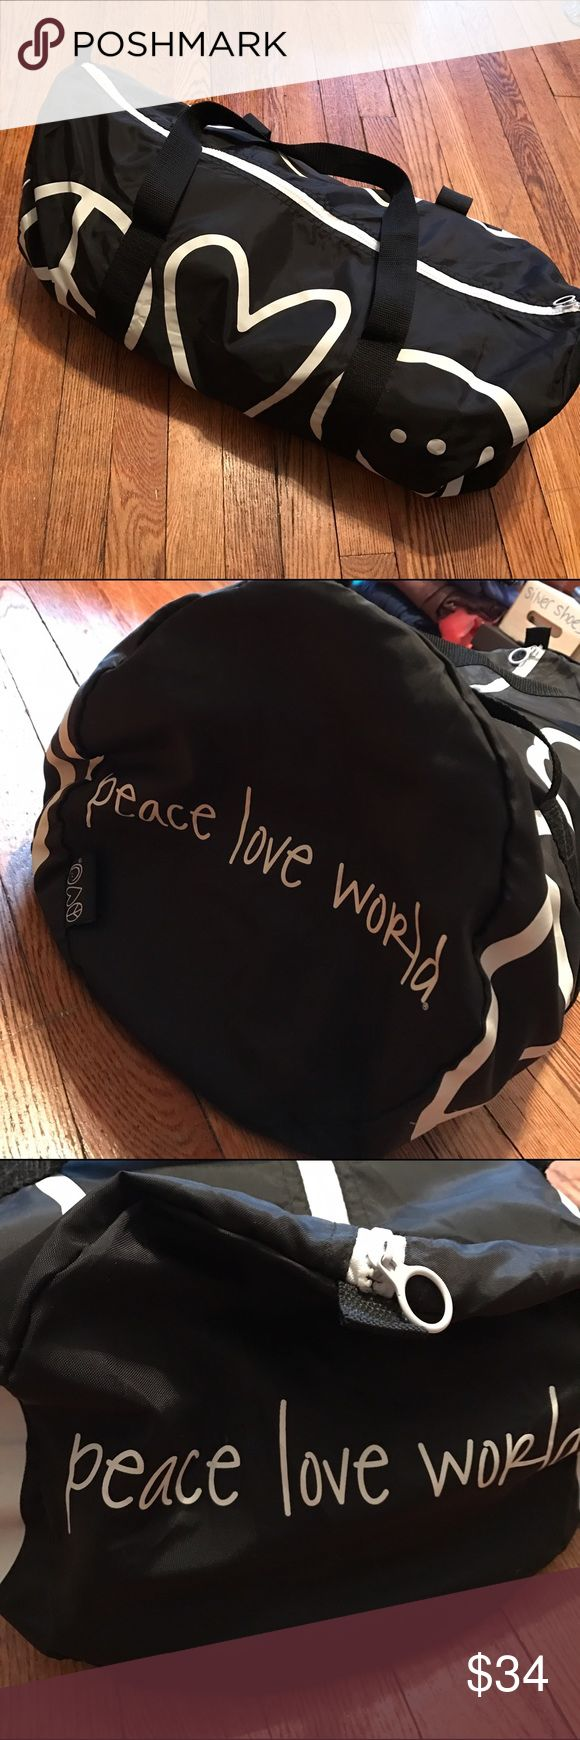 Peace Love World Nylon Duffle Bag or Gym Bag Peace Love World nylon bag - black bag with white Peace Love World logo and detail - great to use as a gym bag or weekender - lightweight and super cute! Peace Love World Bags